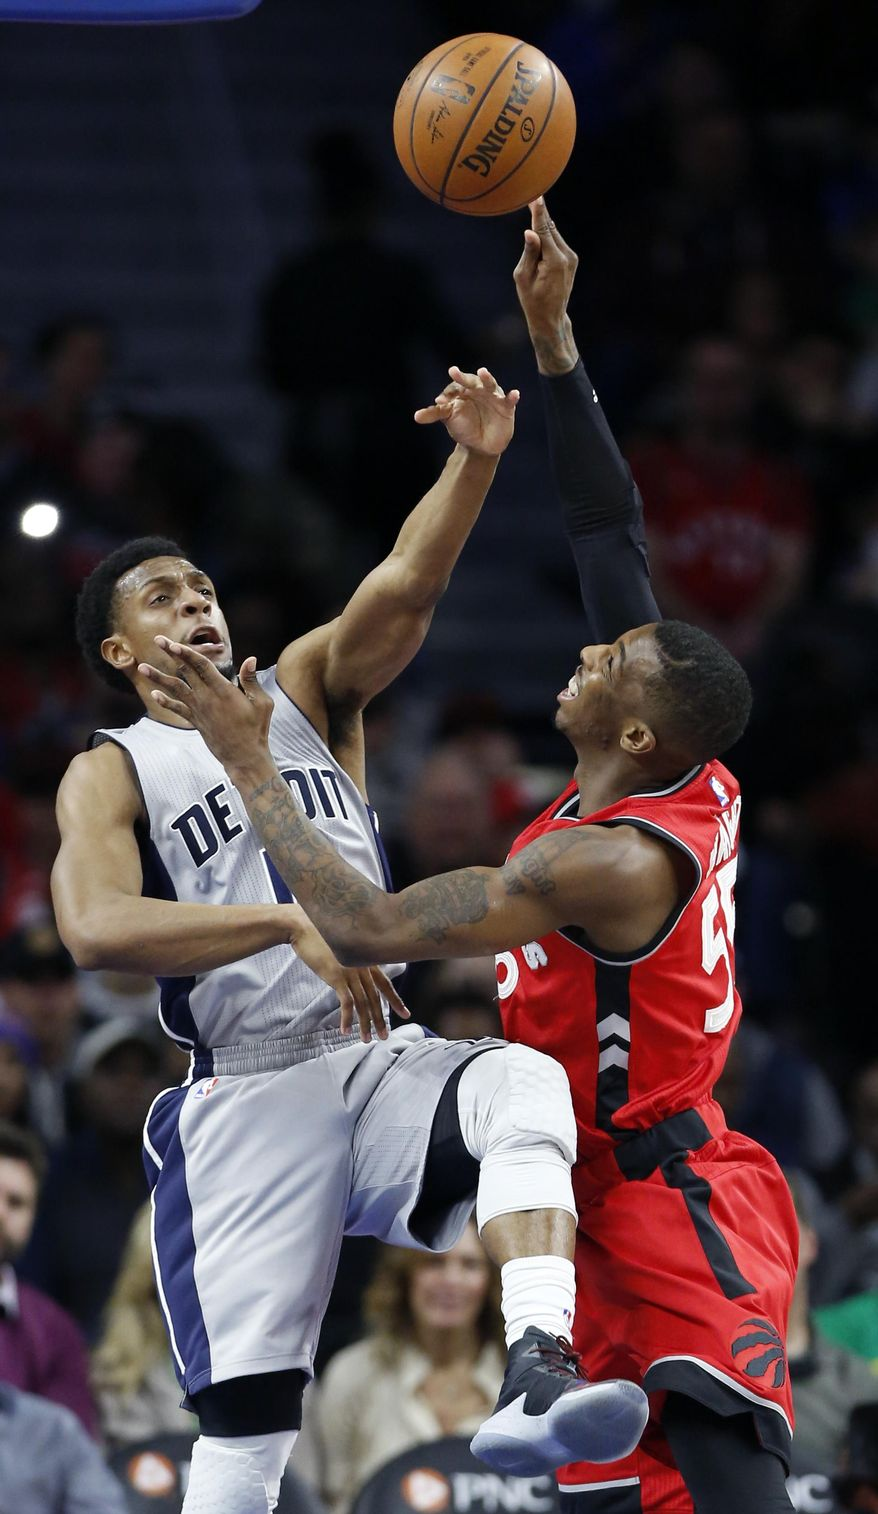 Detroit Pistons guard Ish Smith, left, blocks a shot by Toronto Raptors guard Delon Wright during the first half of an NBA basketball game Friday, March 17, 2017, in Auburn Hills, Mich. (AP Photo/Duane Burleson)